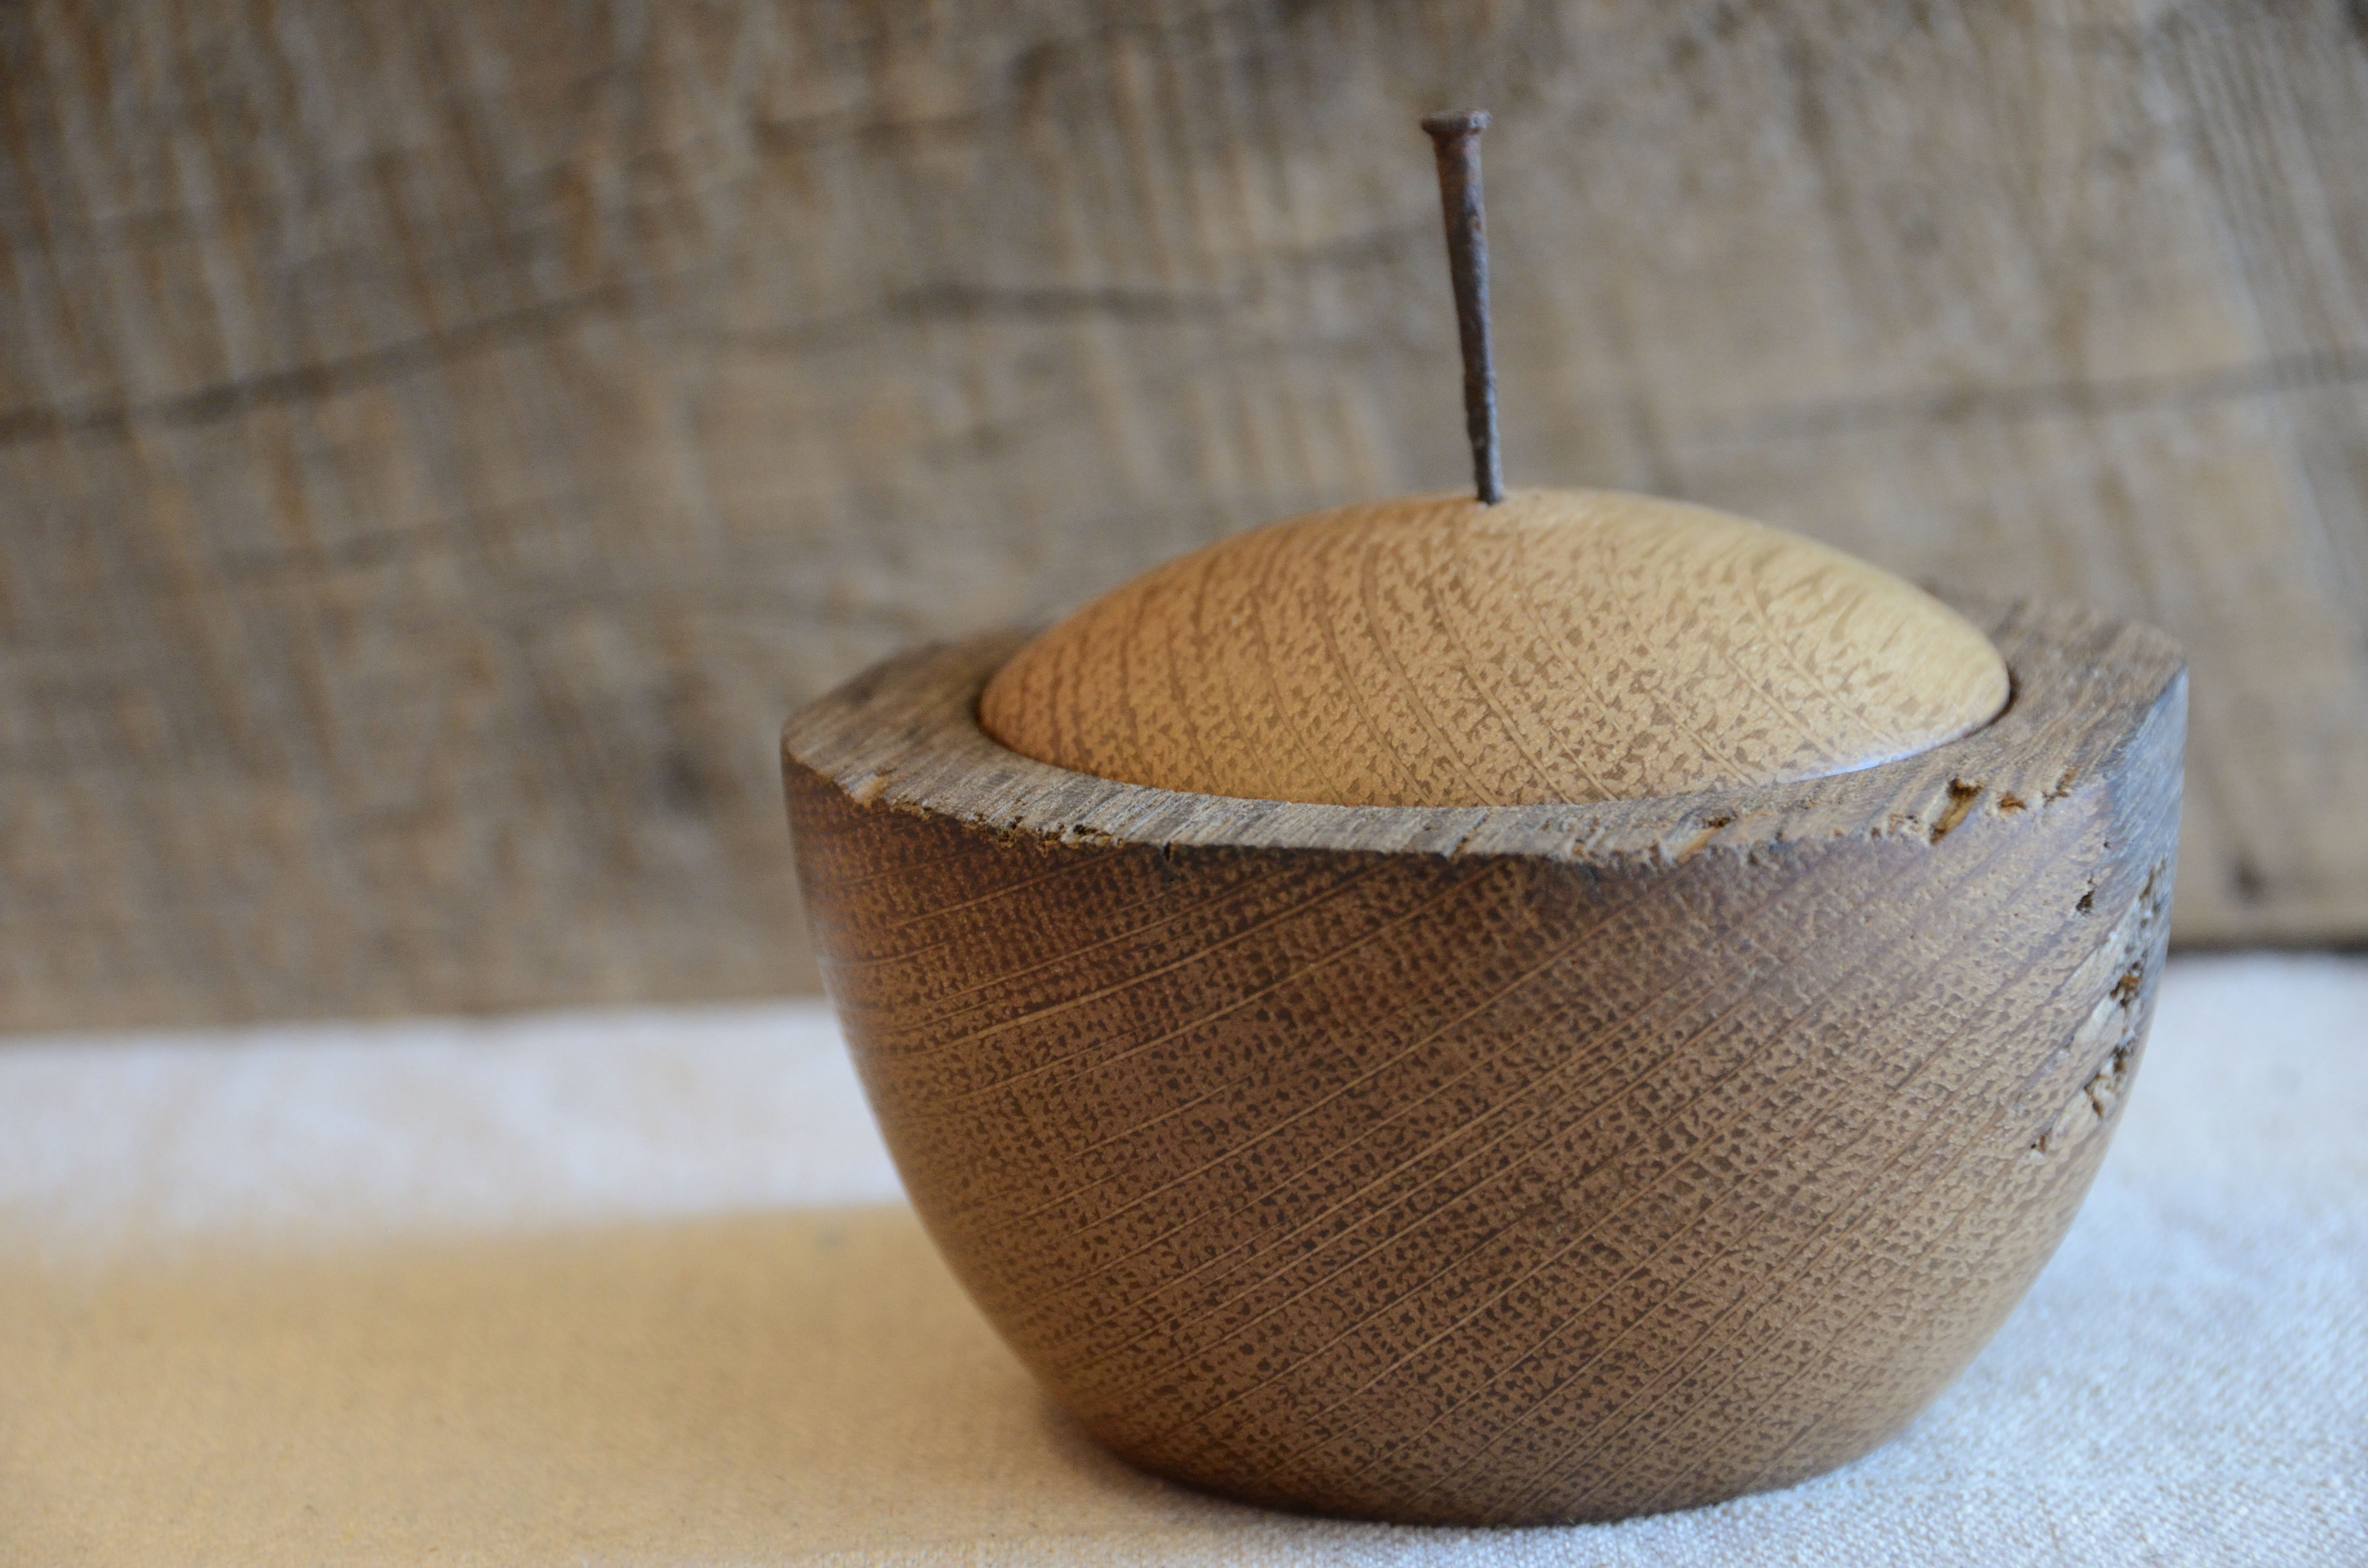 One-cup capacity lidded vessel handcrafted from weathered oak salvaged from a century-old barn near Frederick, MD.